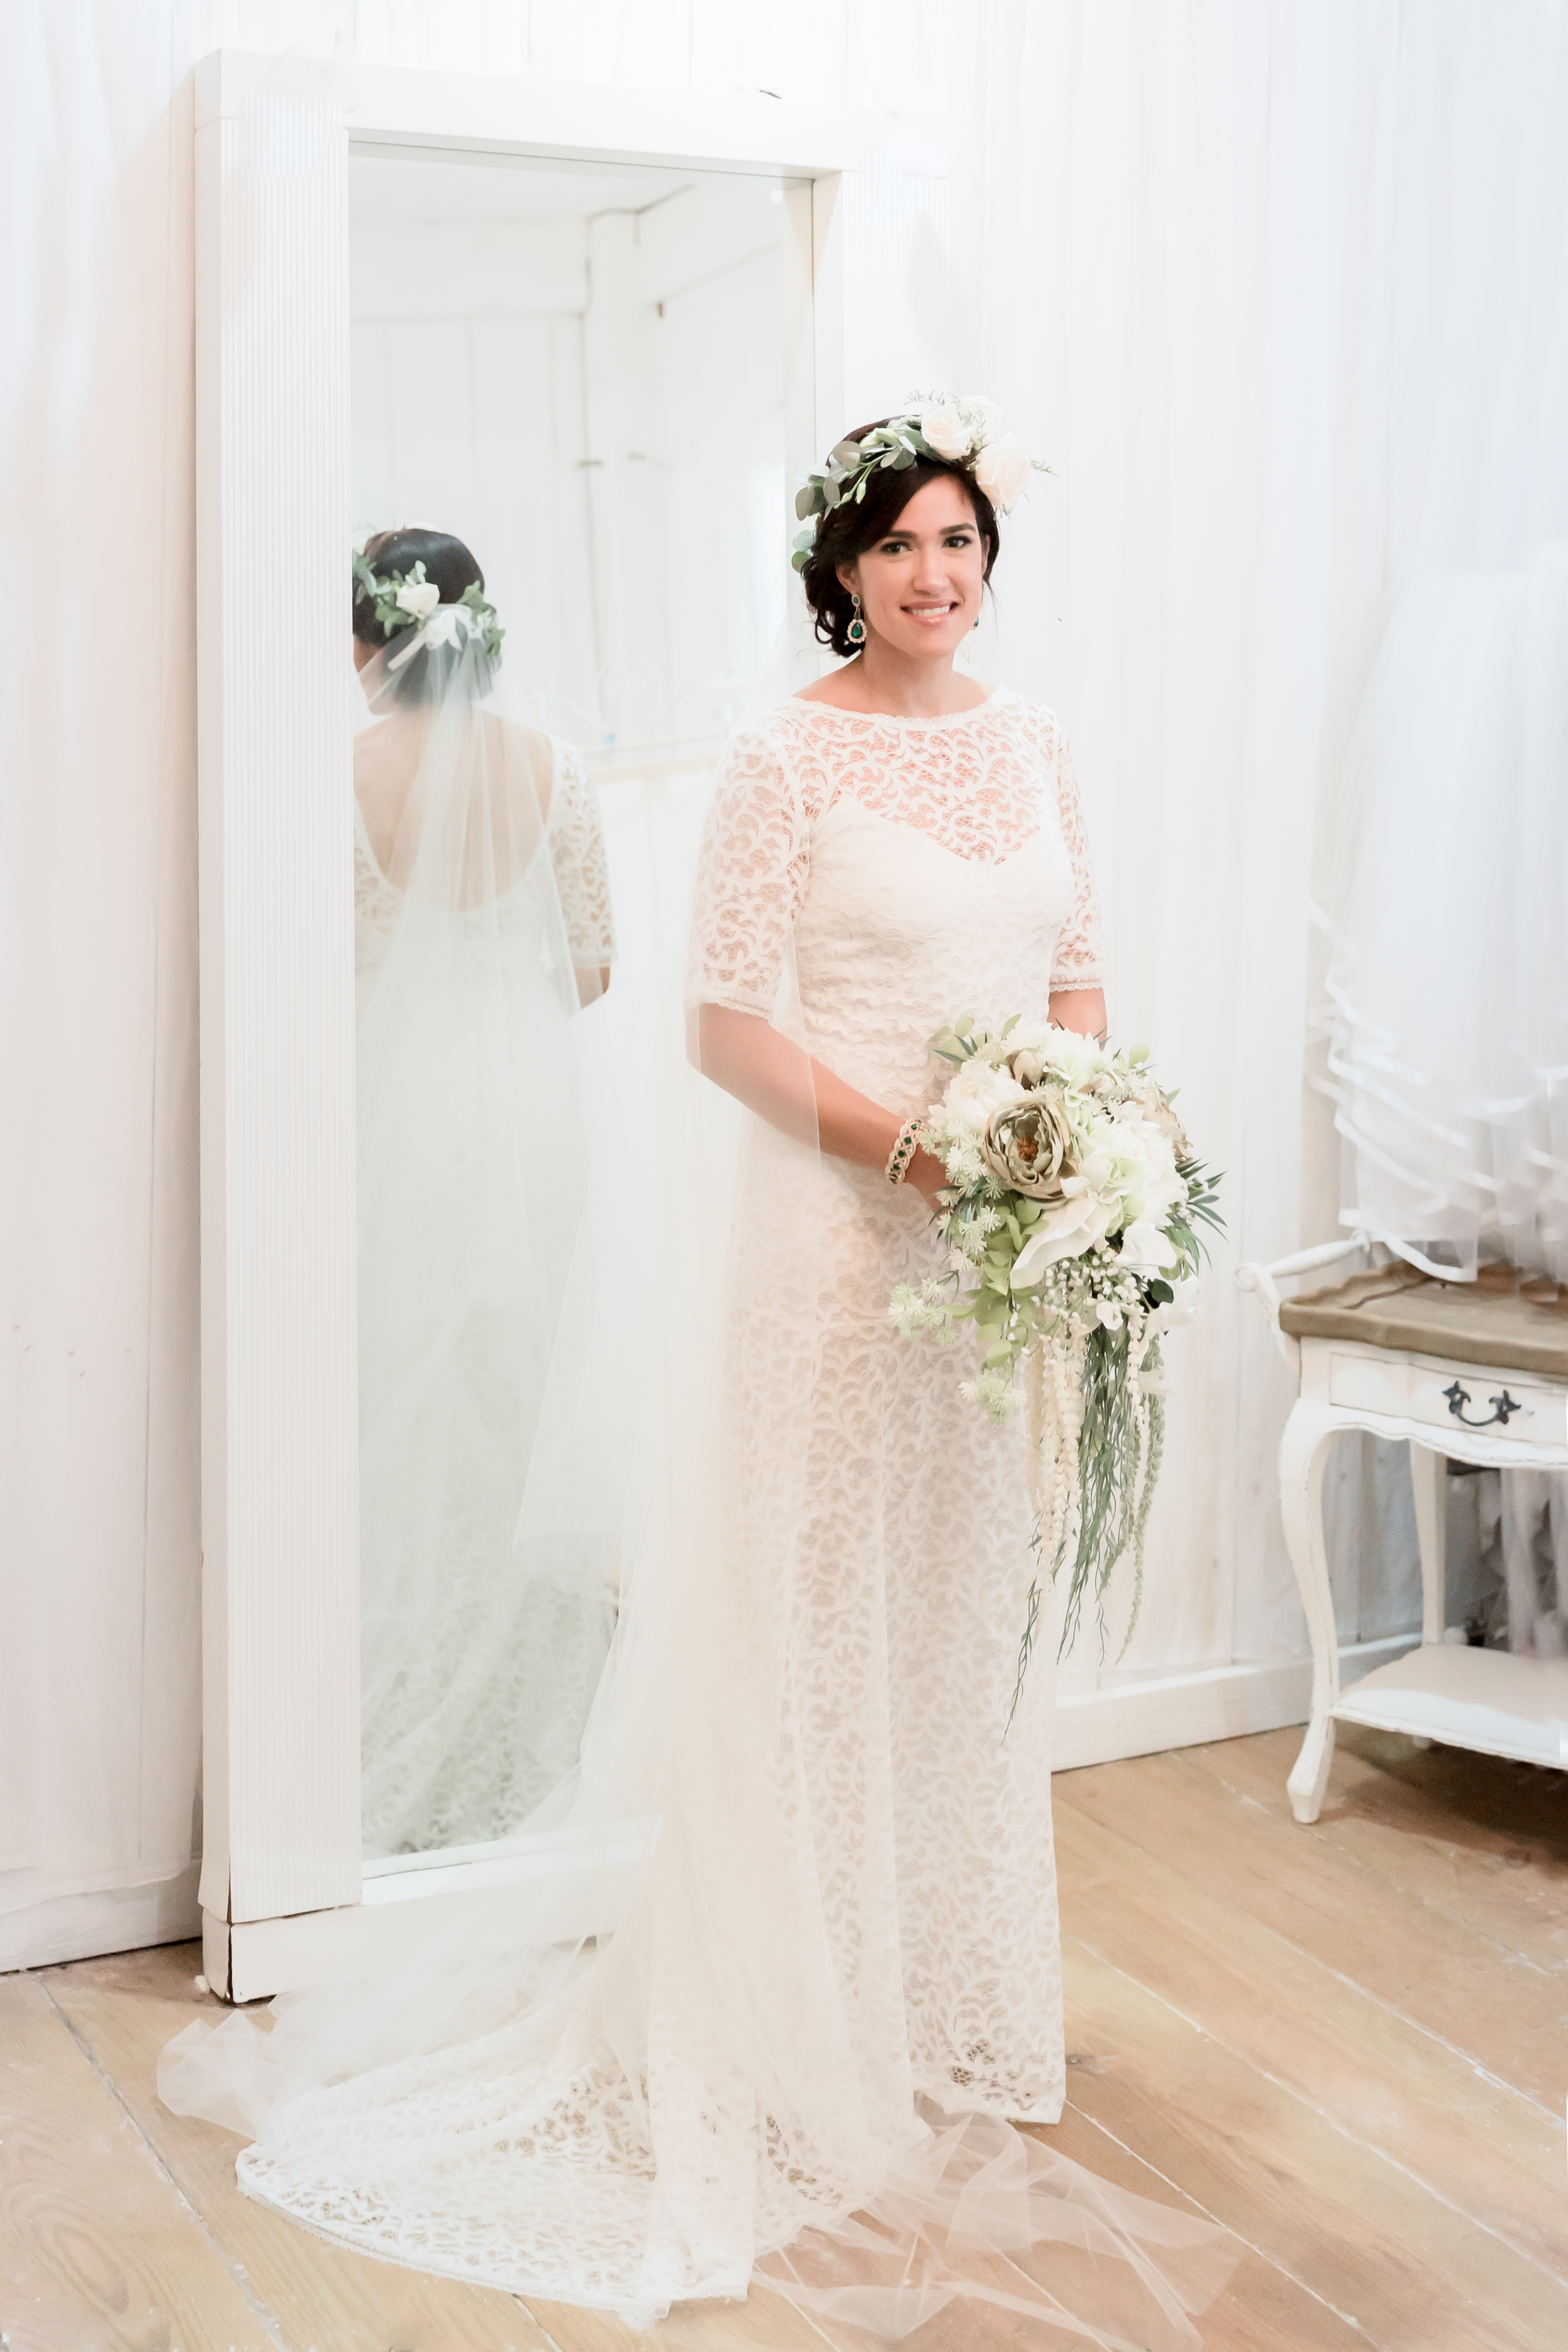 Two Piece Wedding Dress - Anna Skoblikova